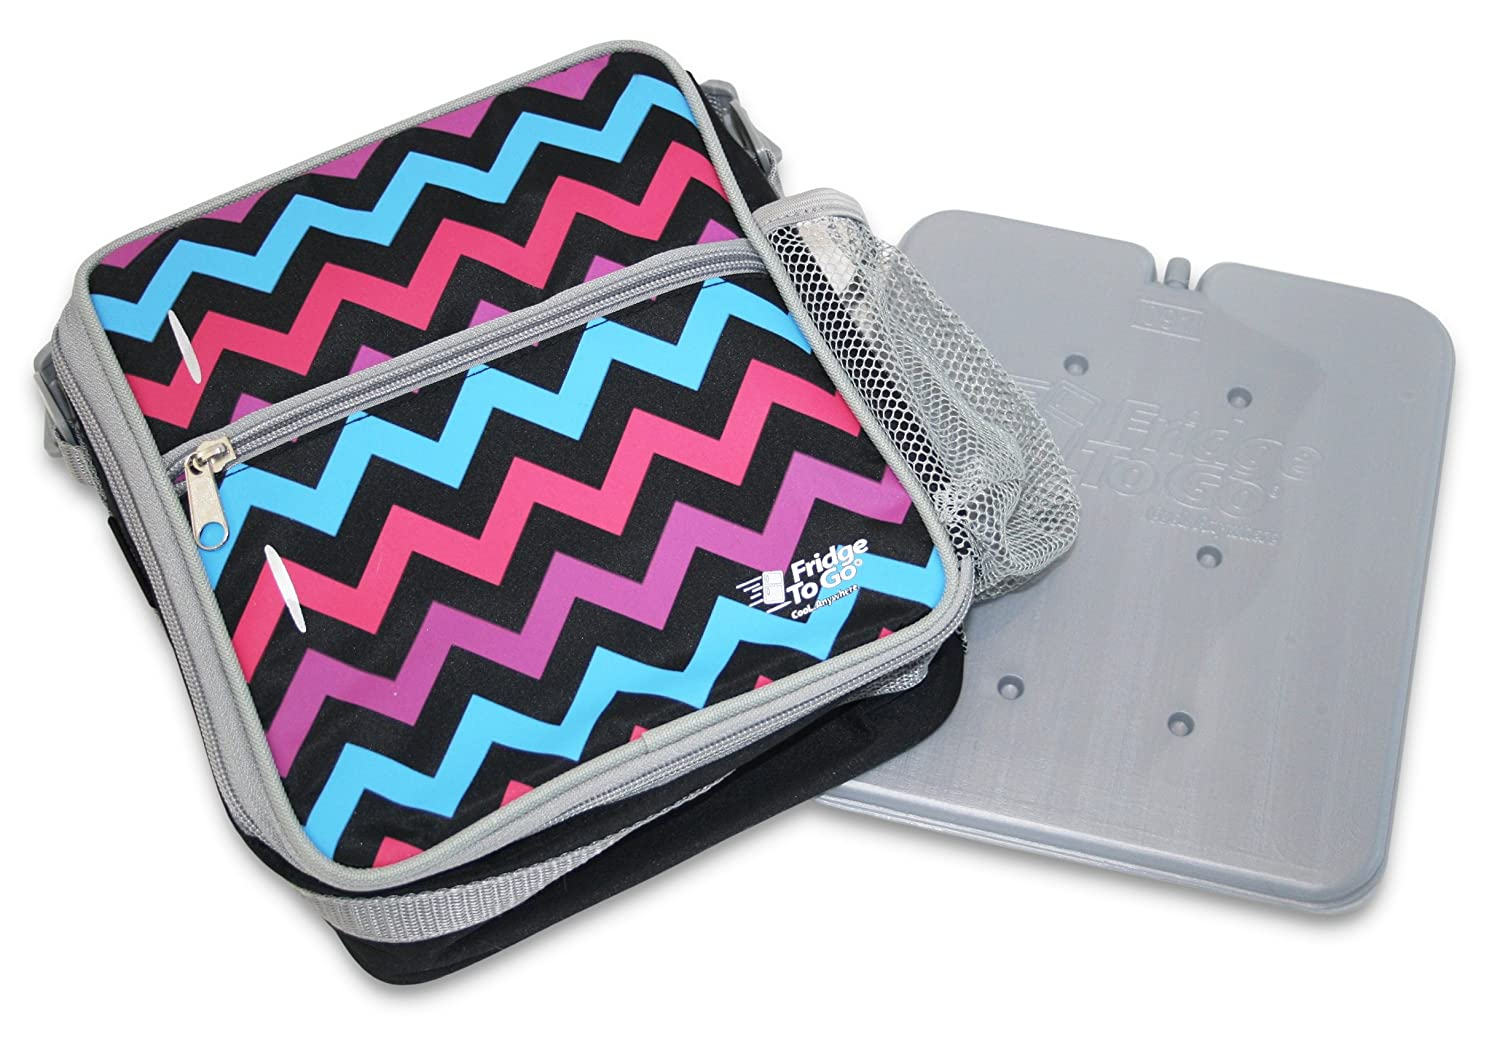 Fridge-to-go INSULATED LUNCH BAG - Cooler Bag With Cooling Panel, Mesh Side Pockets, Name Tag - Cool Up To 8 Hrs - Back to School Quality To Last The Whole Year (CHEVRON)